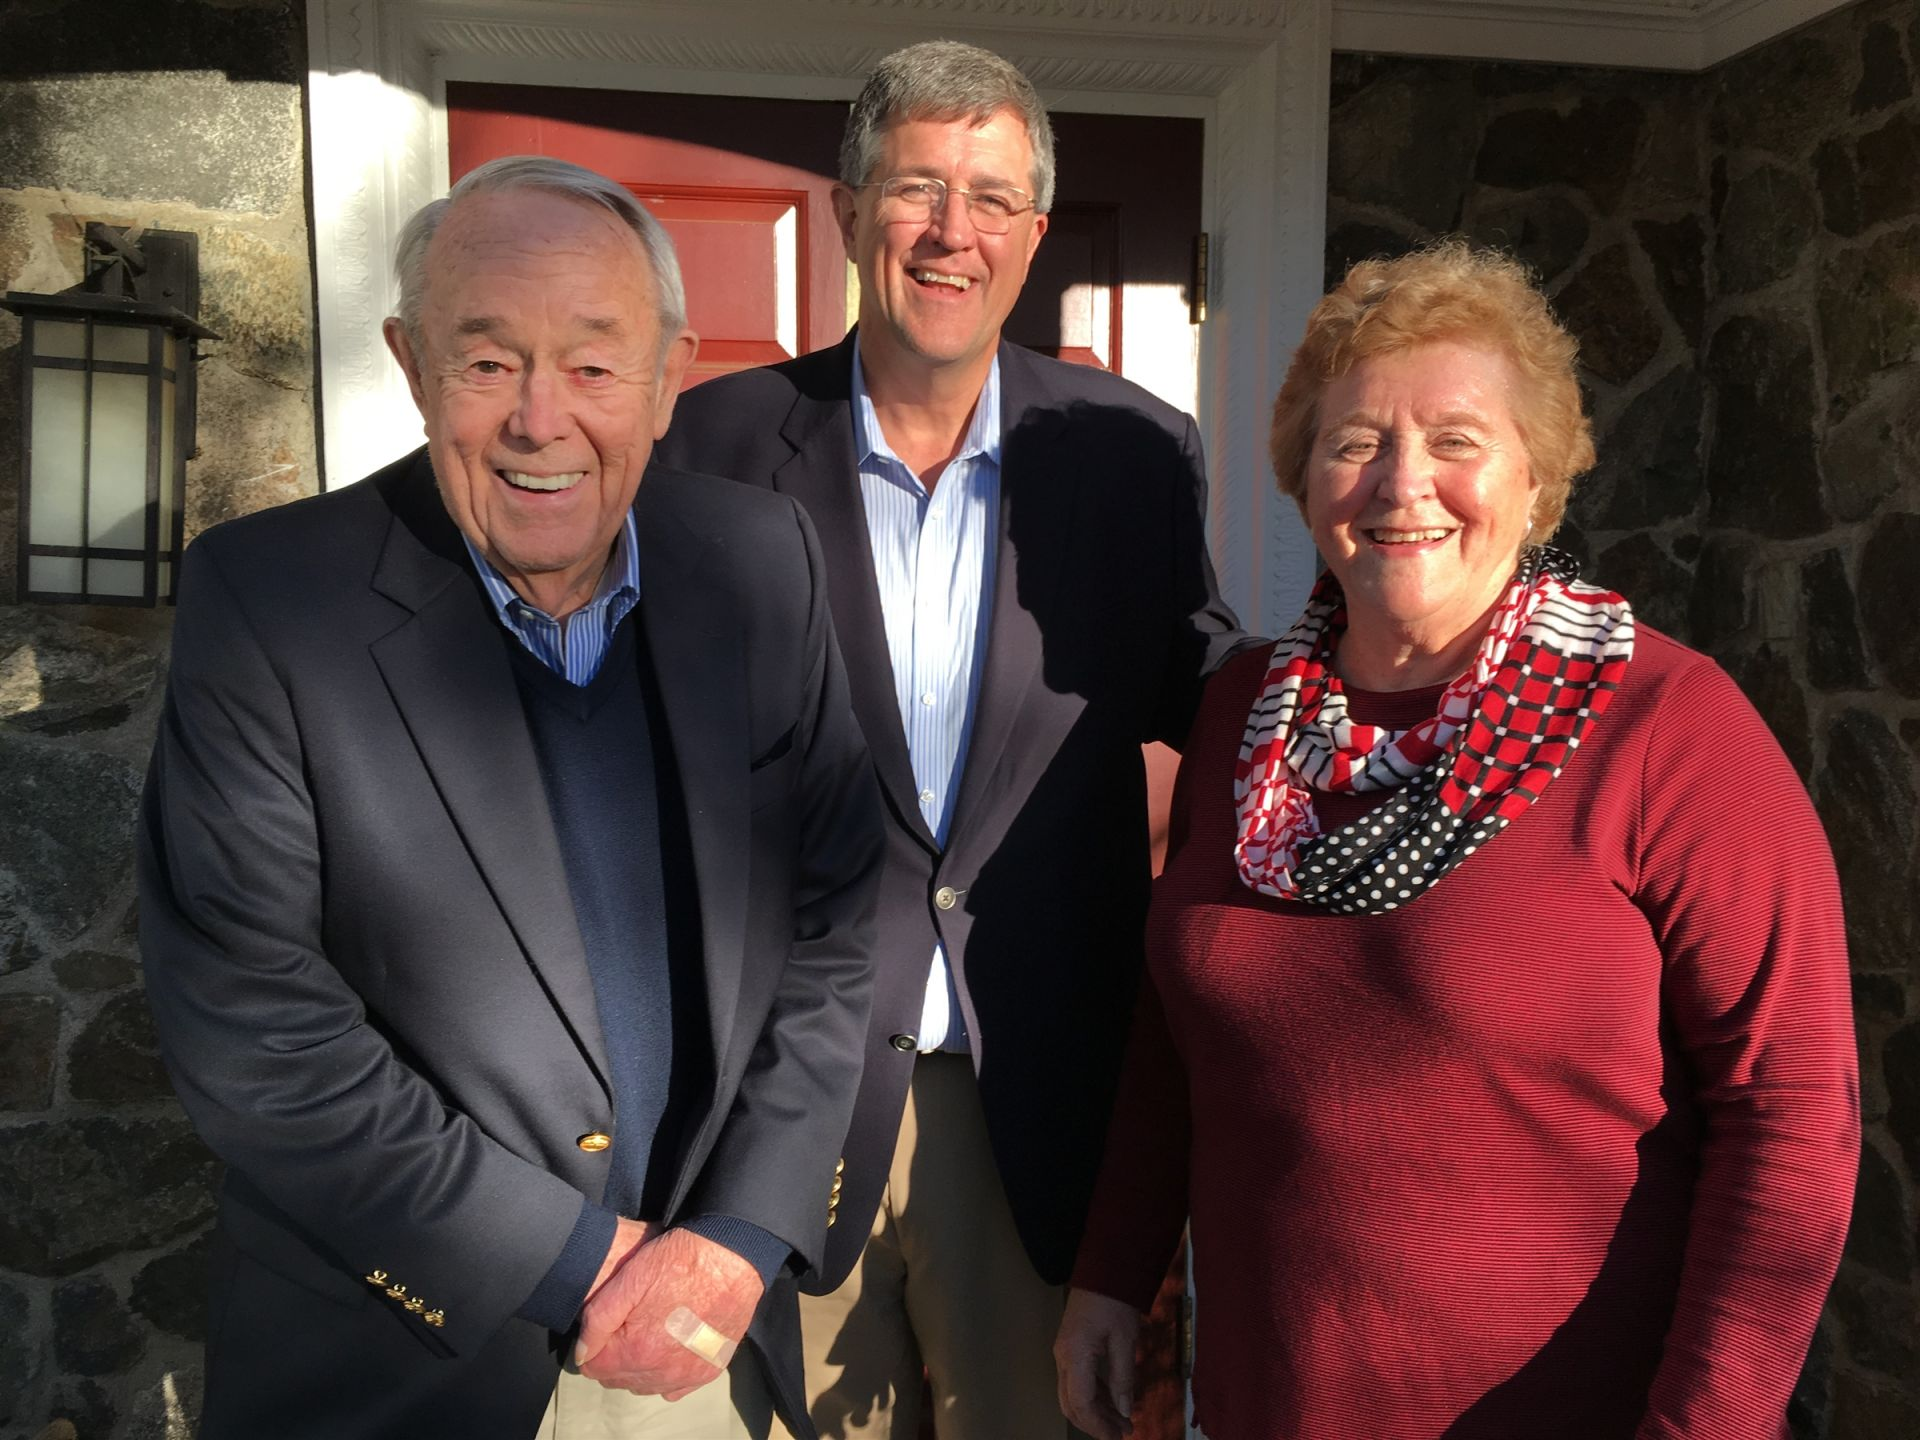 Barbara, Doug, and Pete Birnie '53 visiting Belmont Hill on November 18, 2016.